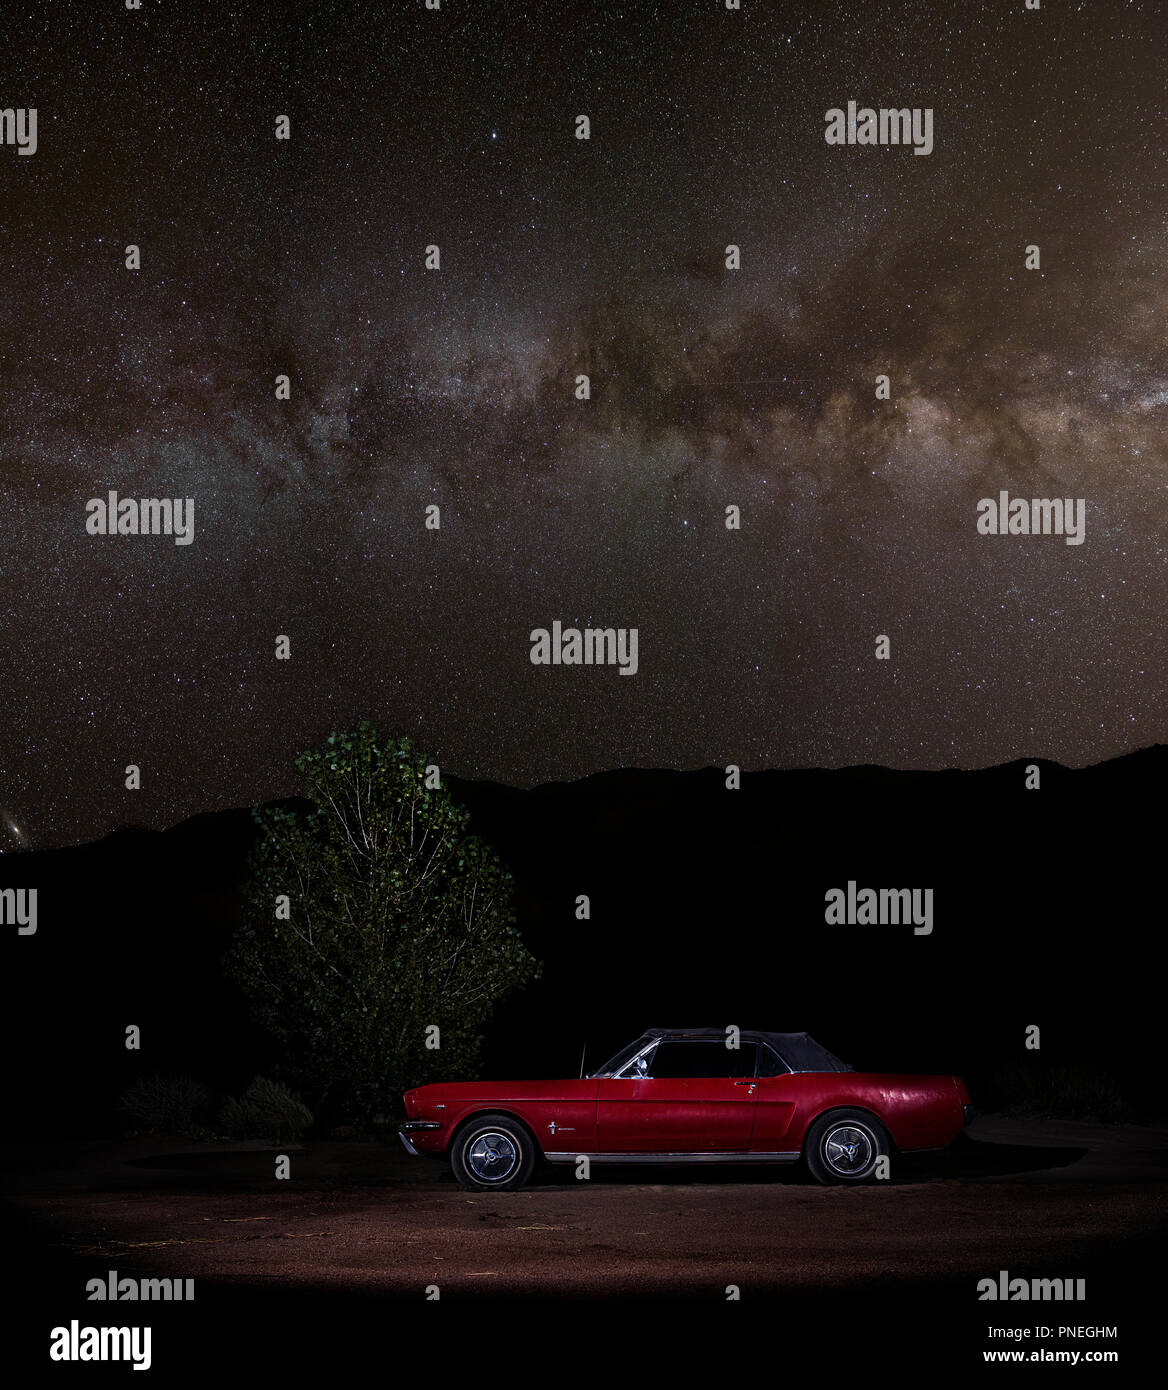 1965 Red Convertible Ford Mustang under the Milky Way at Night - Stock Image